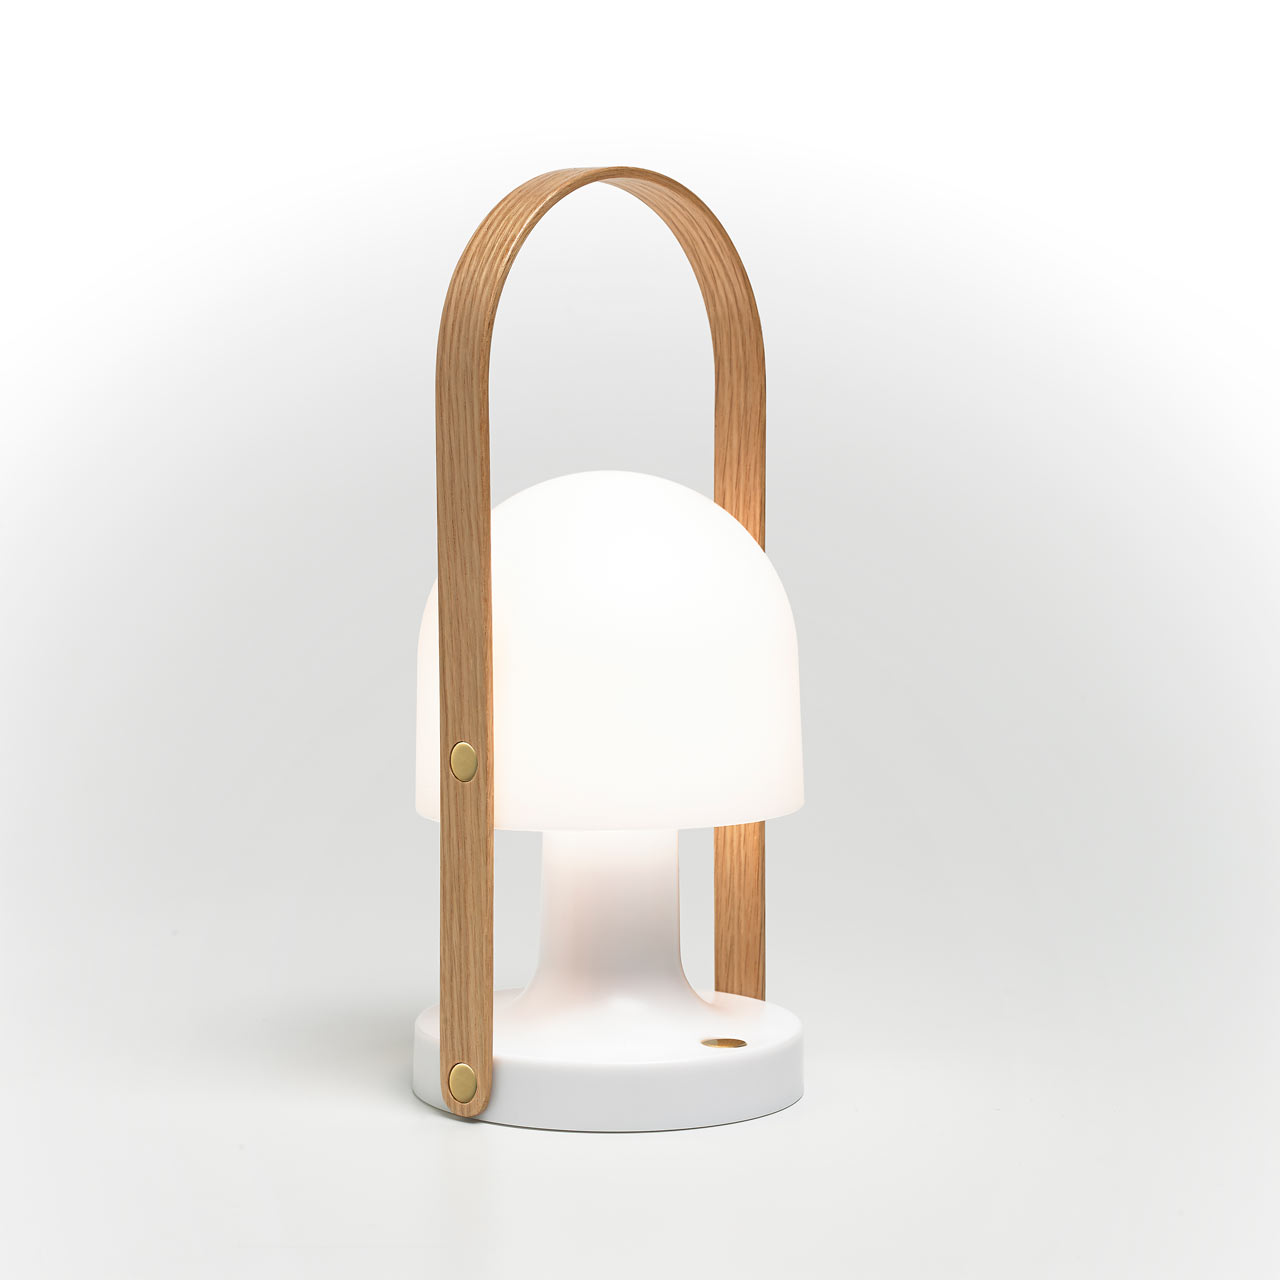 followme a portable rechargeable lamp easy to carry. Black Bedroom Furniture Sets. Home Design Ideas